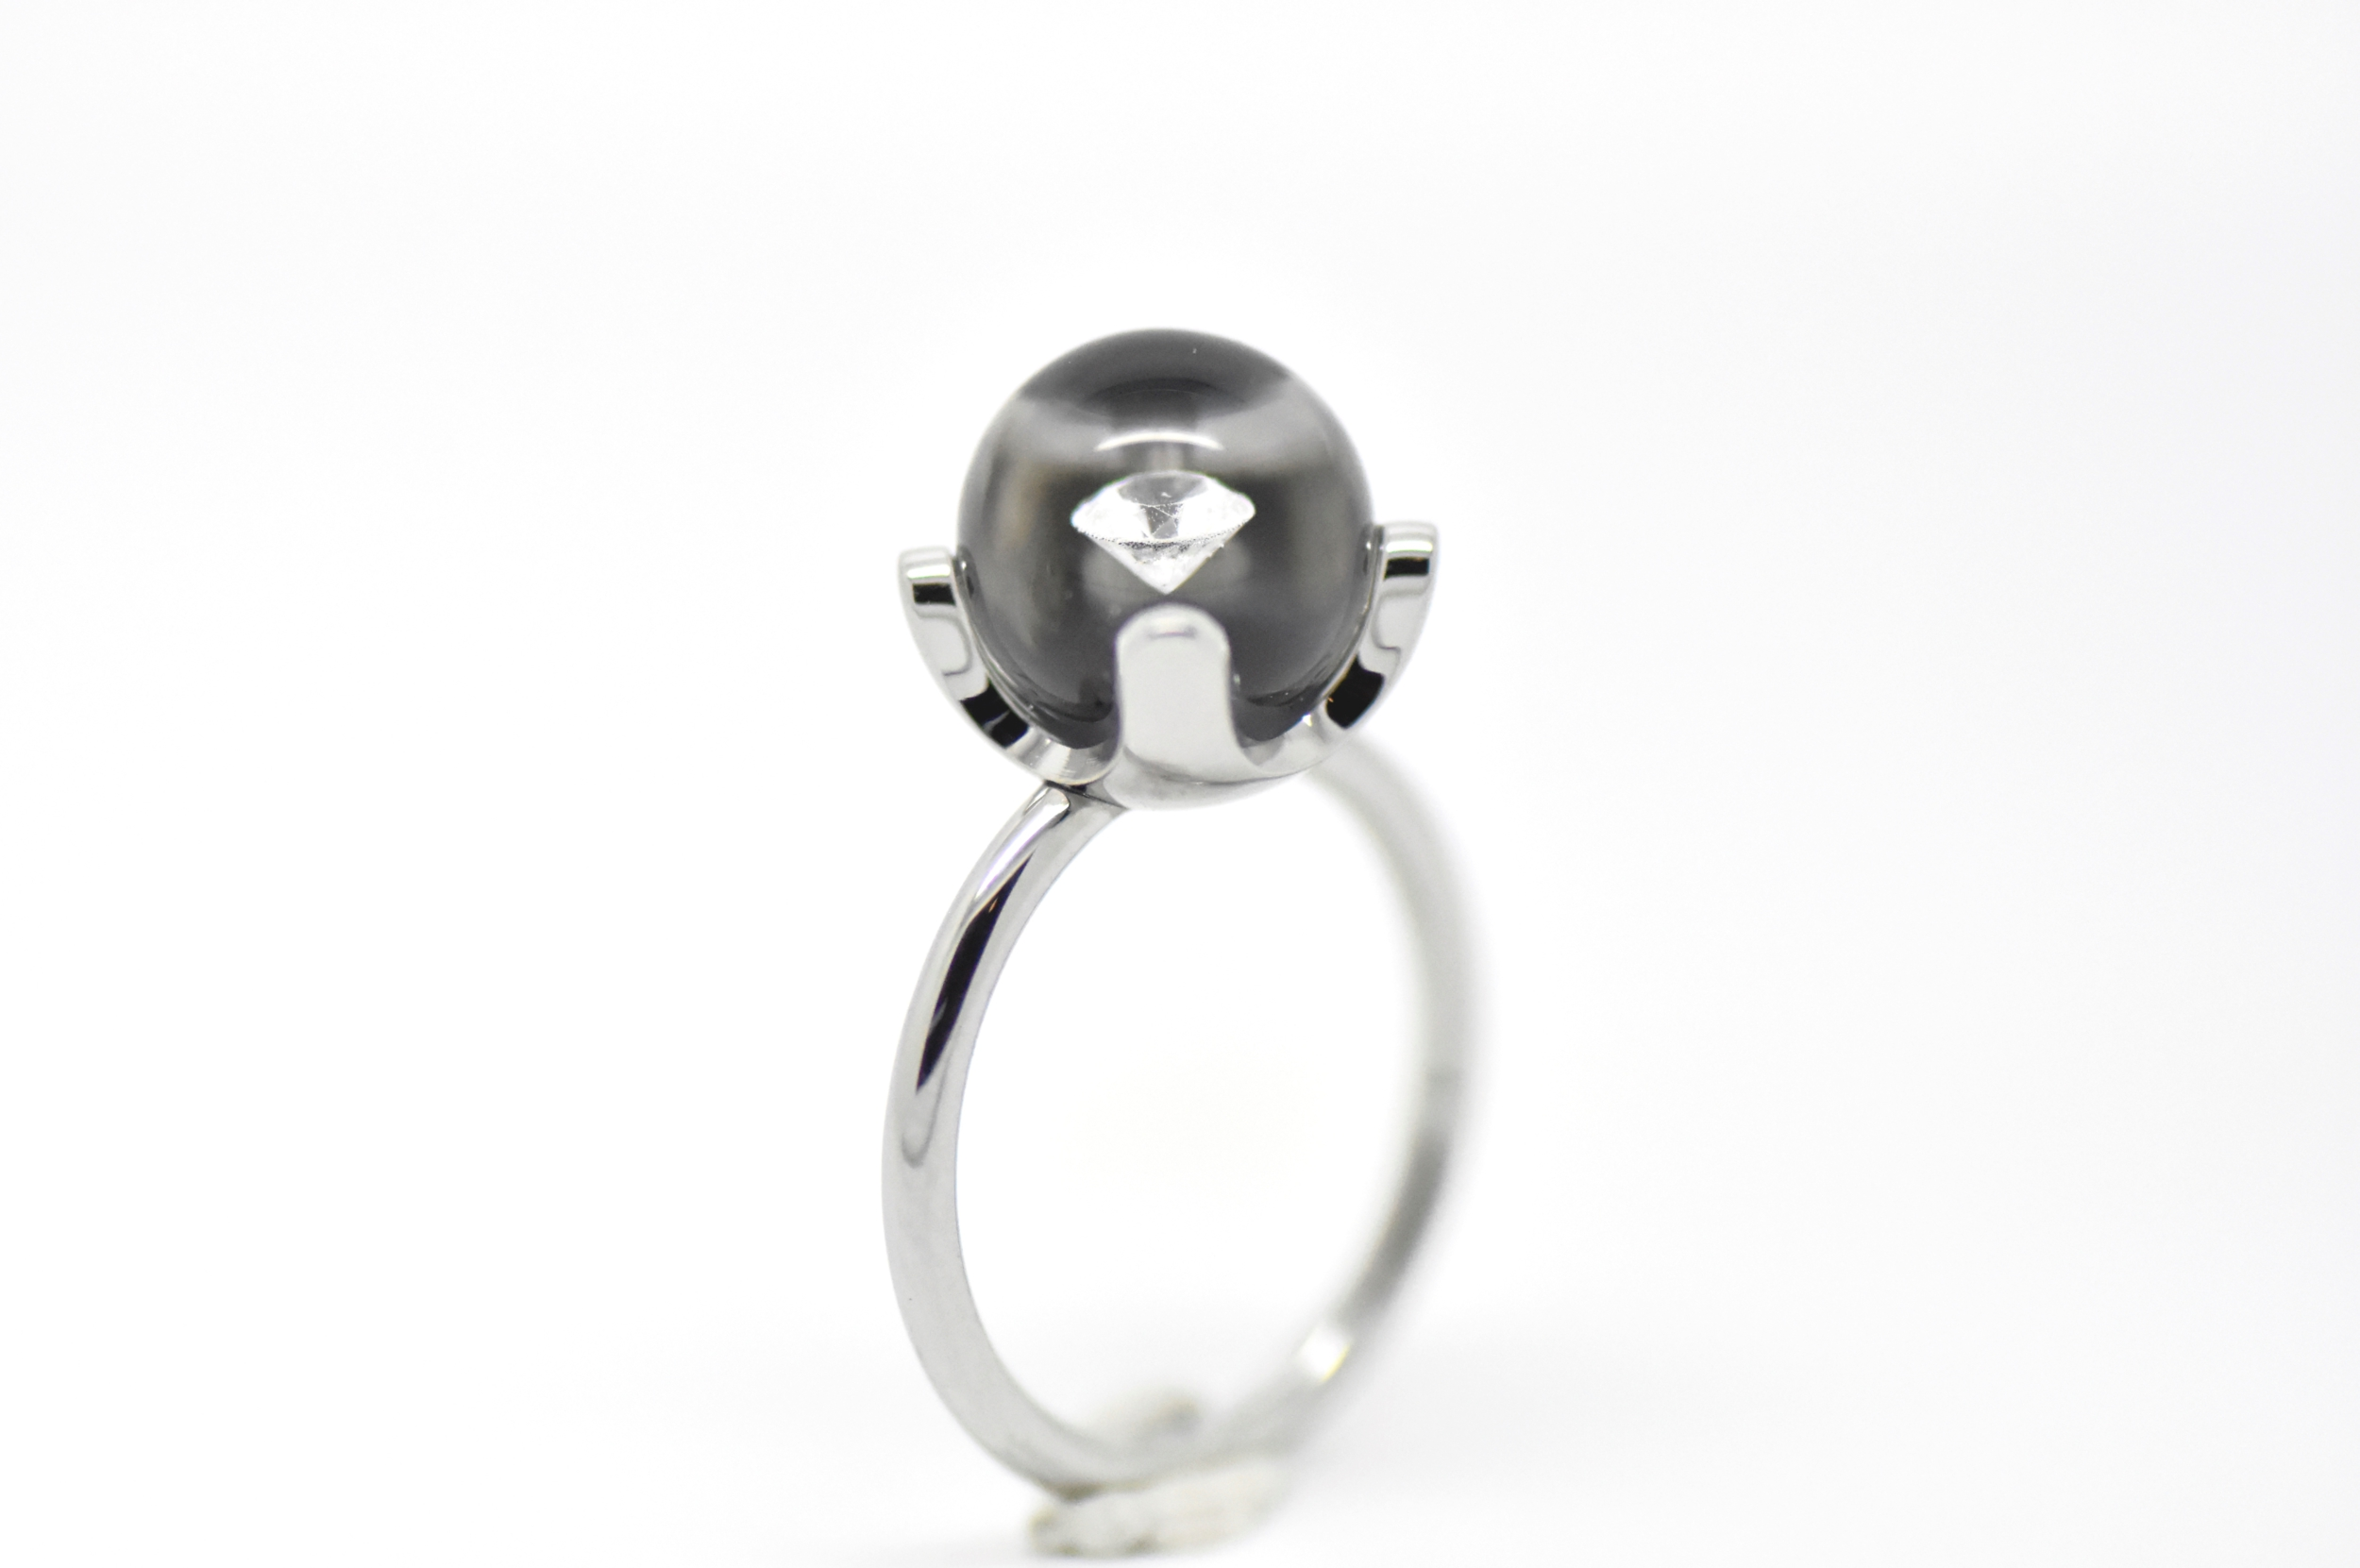 Diamond in glass chaton collection 10 mm bead ring